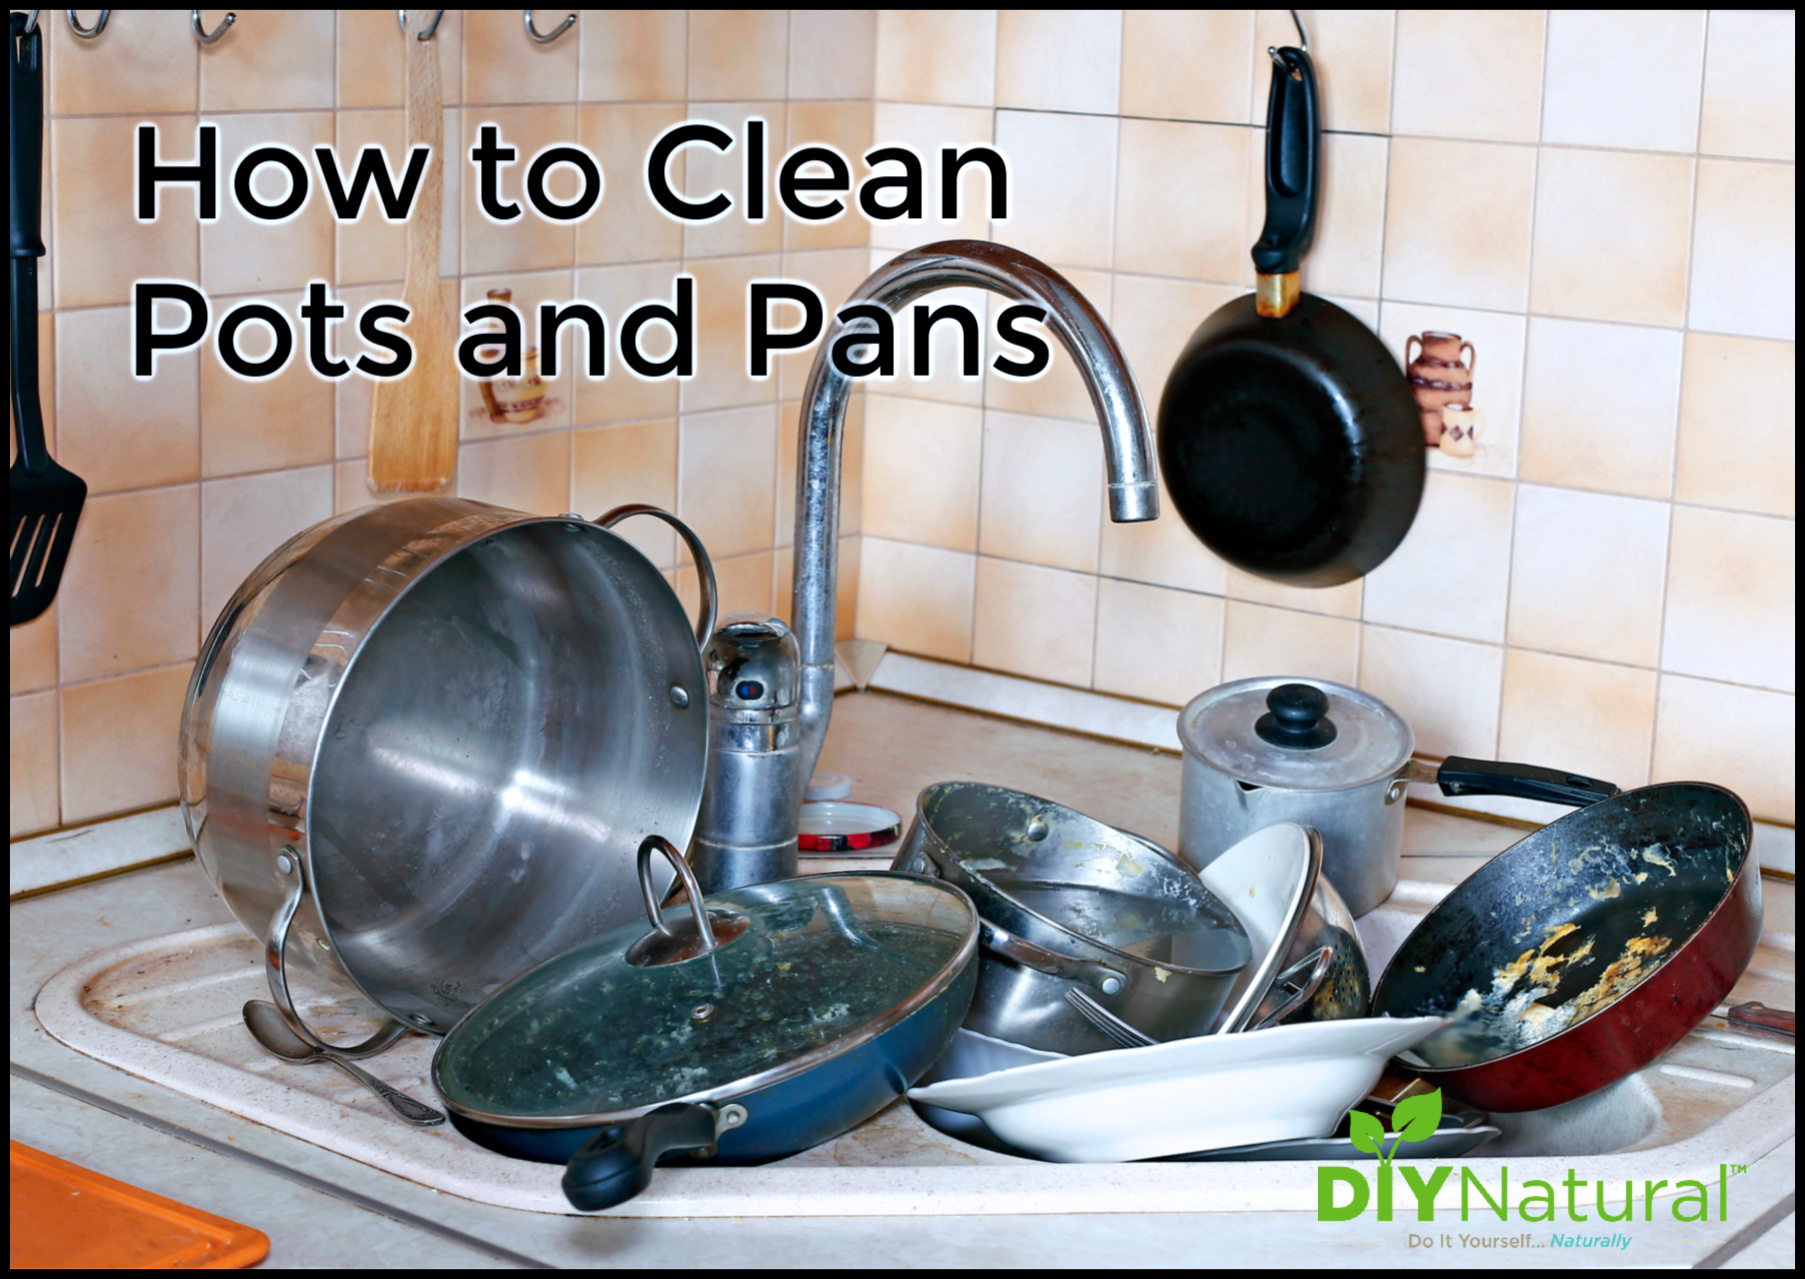 How To Clean Built Up Gunk On Your Pots and Pans